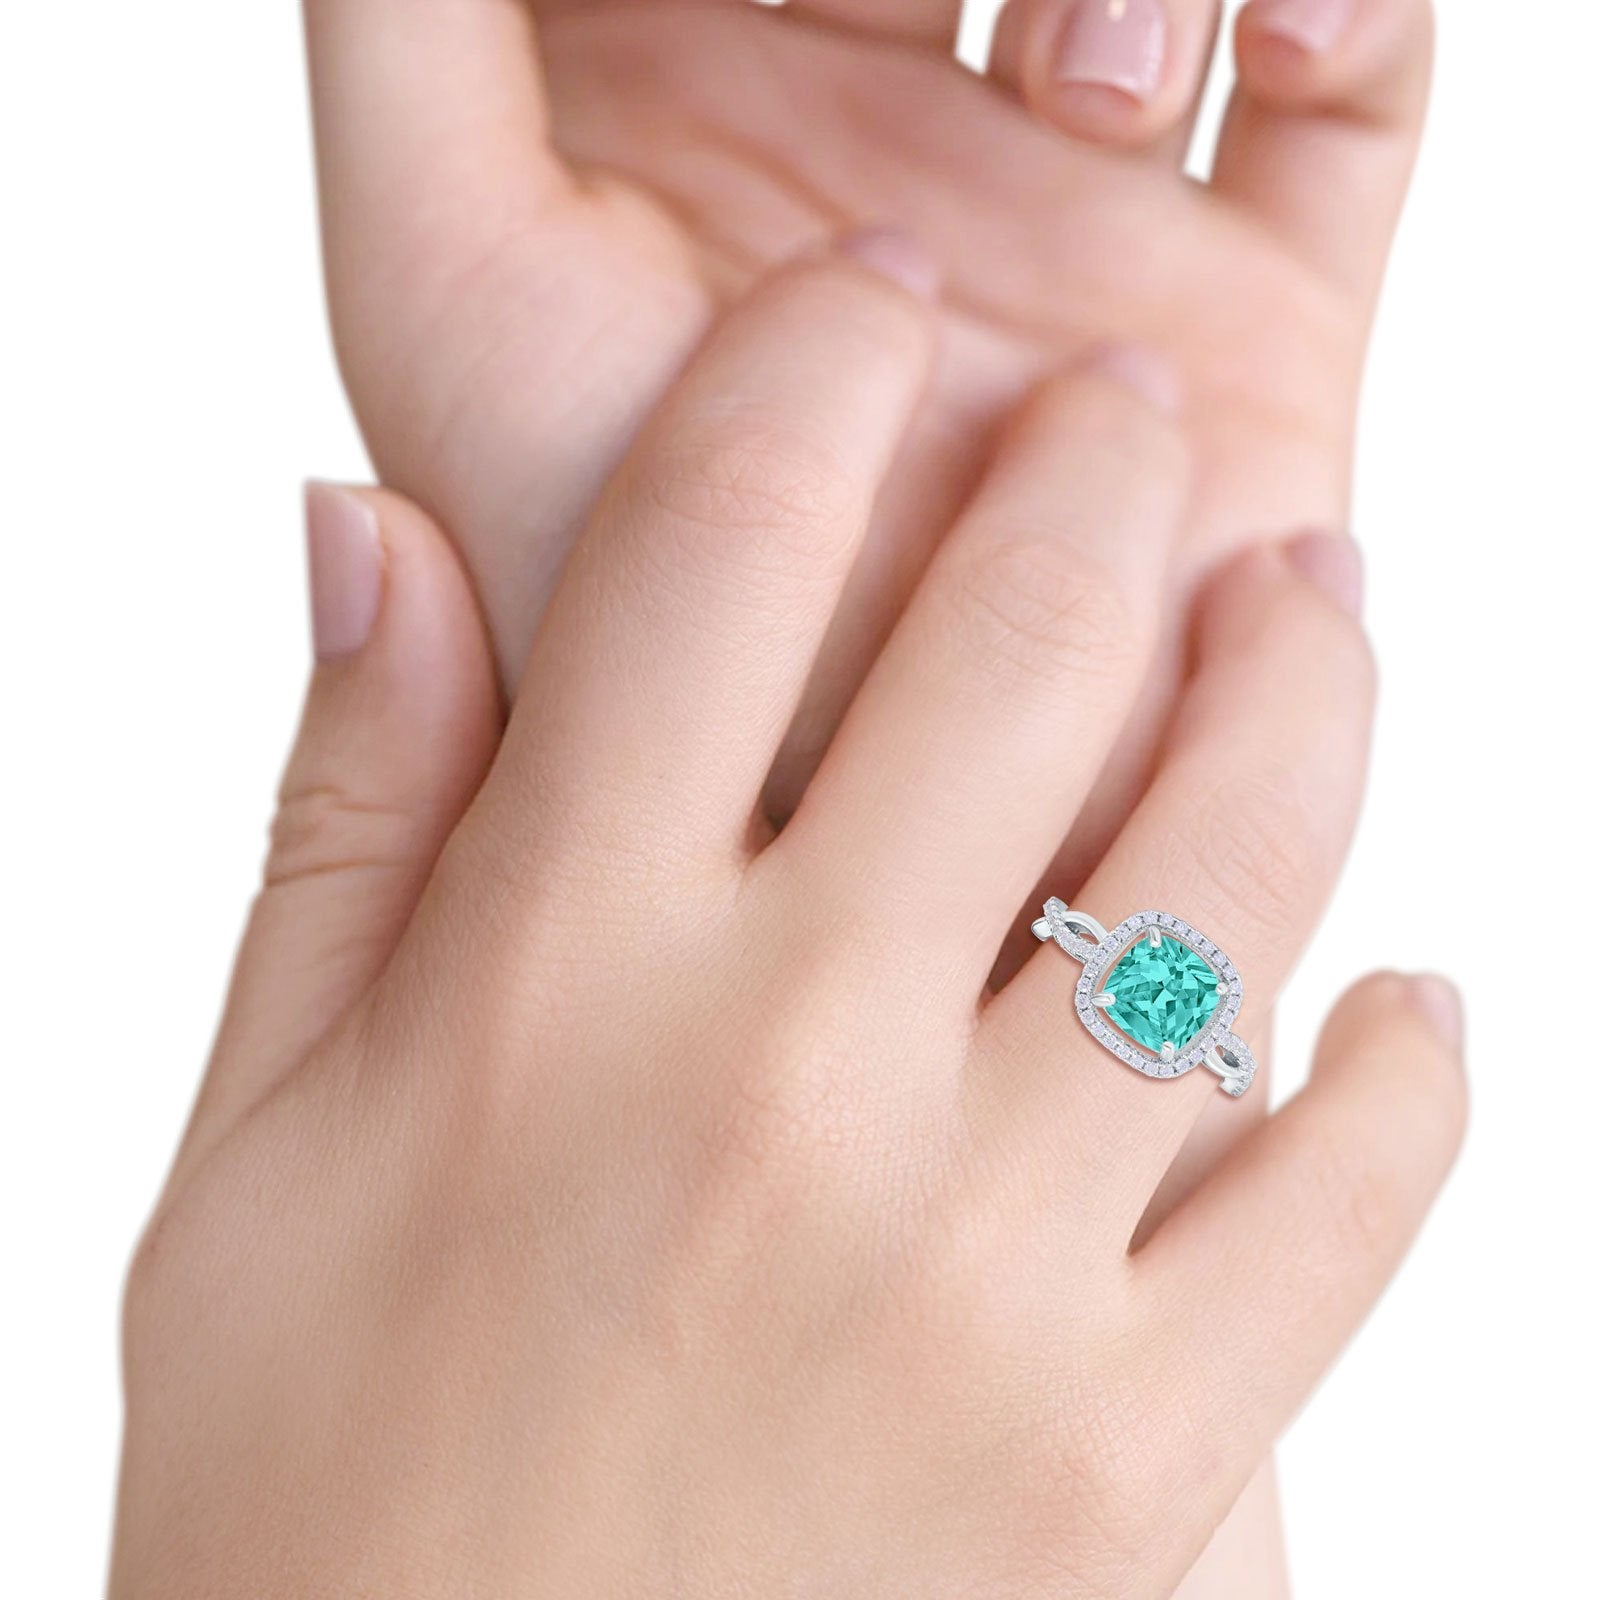 Infinity Shank Cushion Engagement Ring Simulated Paraiba Tourmaline CZ 925 Sterling Silver